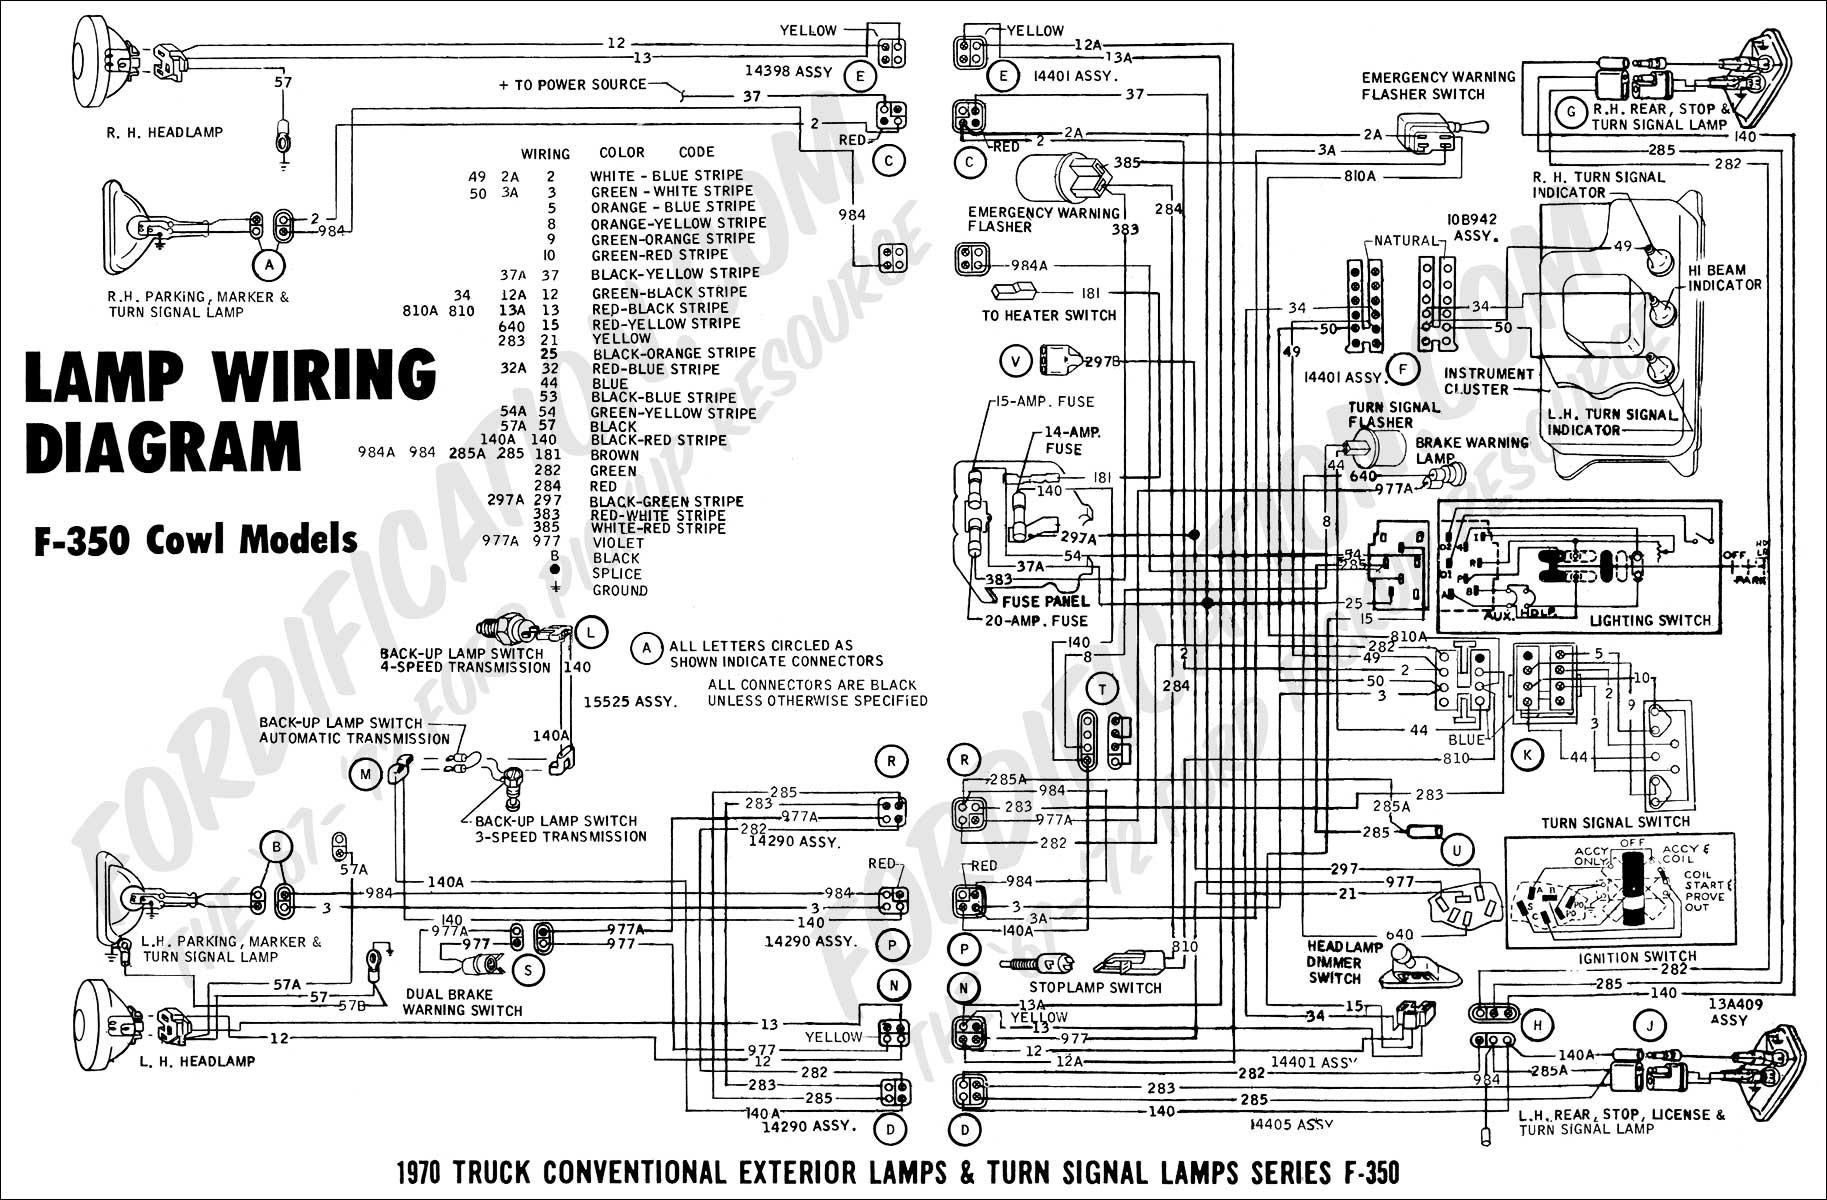 1996 ford F250 Tail Light Wiring Diagram ford F 350 Tail Light Wiring Diagram Schema Wiring Diagram